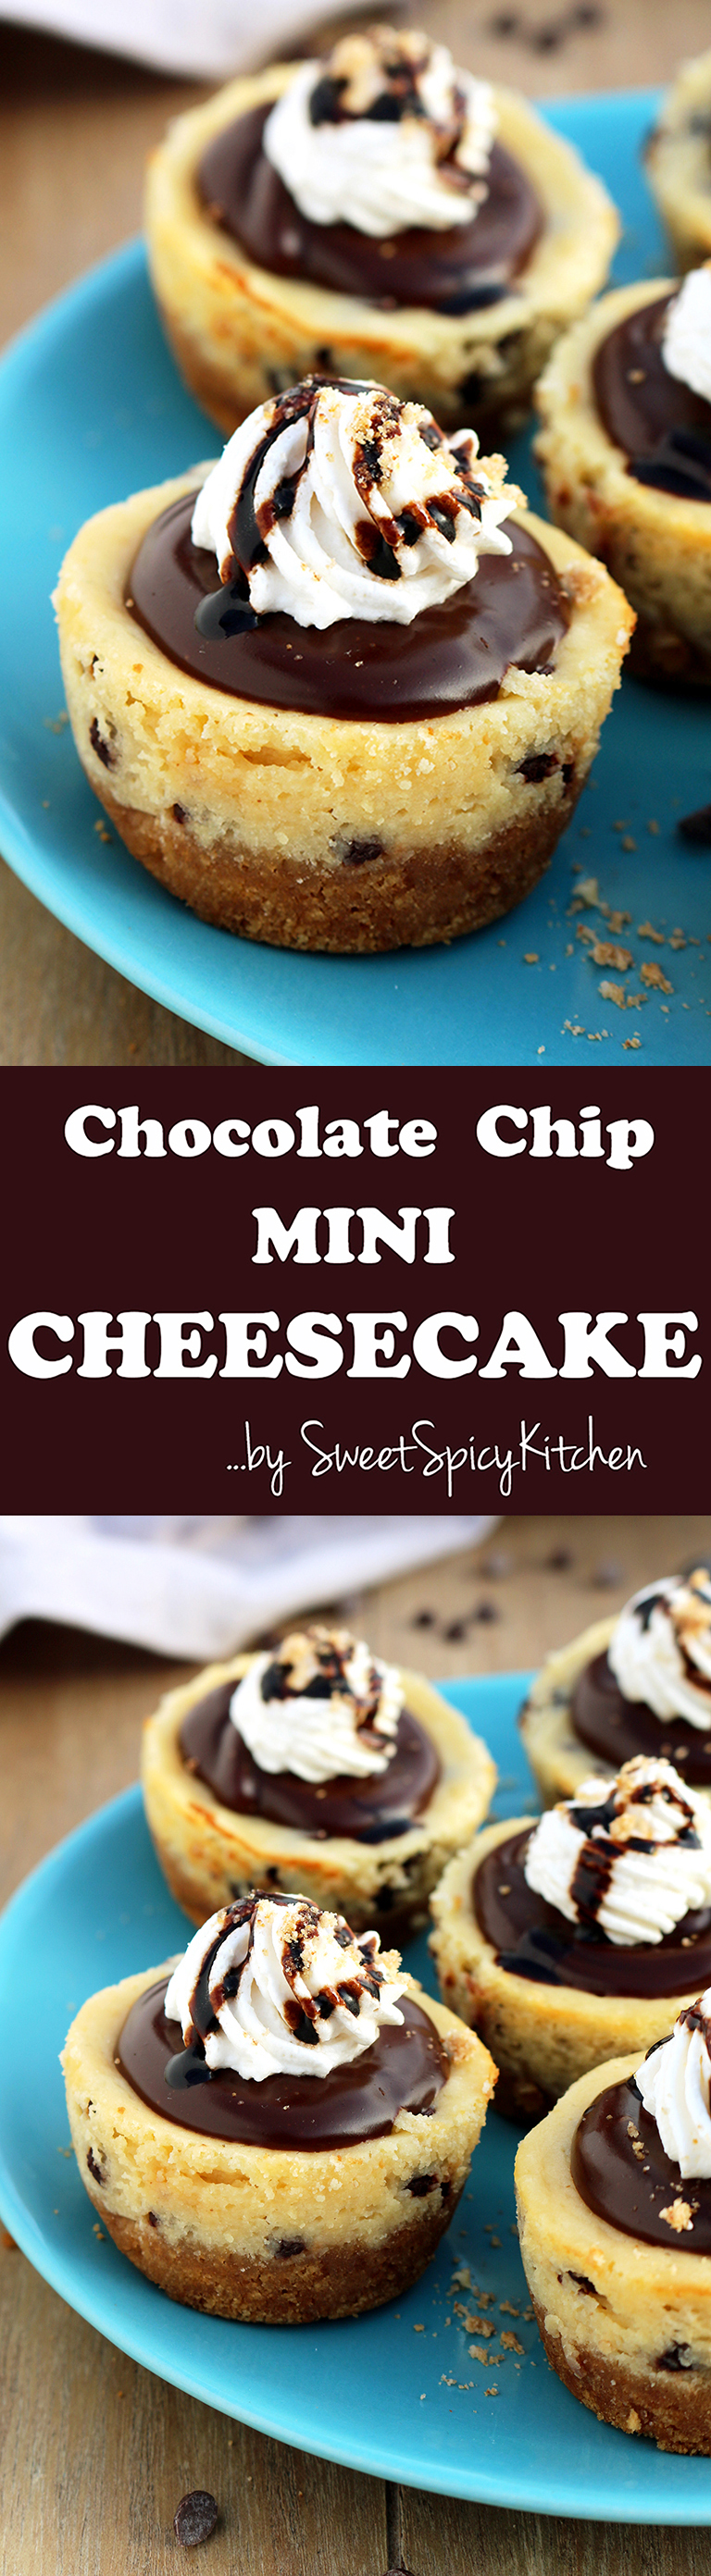 Graham cracker layer, chocolate chips cheesecake, chocolate ganache and whipping cream on the top make these Chocolate Chip Mini Cheesecake just perfect.